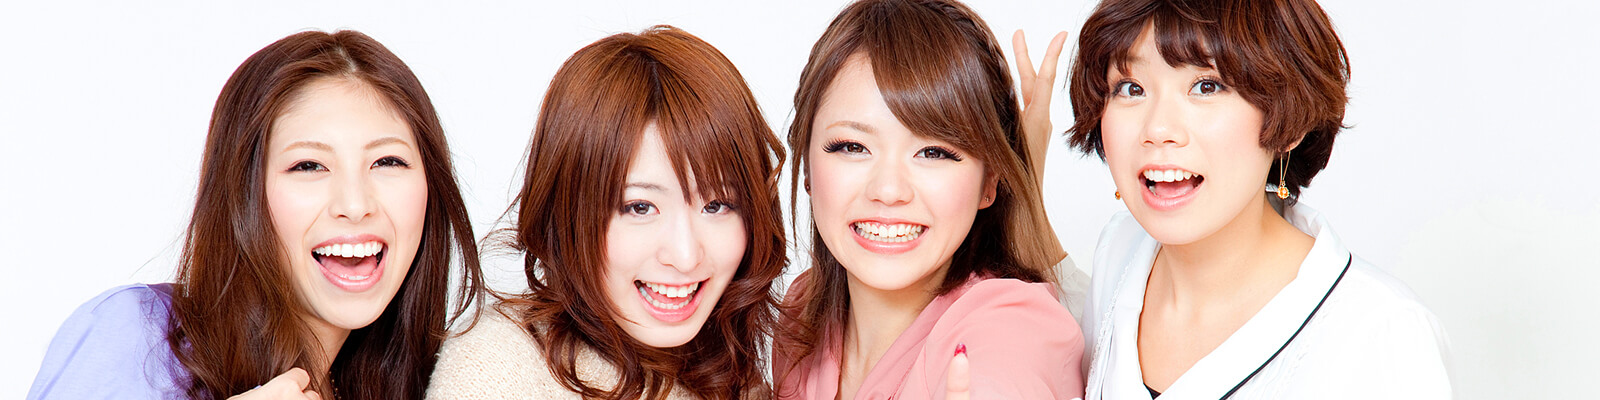 The Younger Generation of Japanese Women